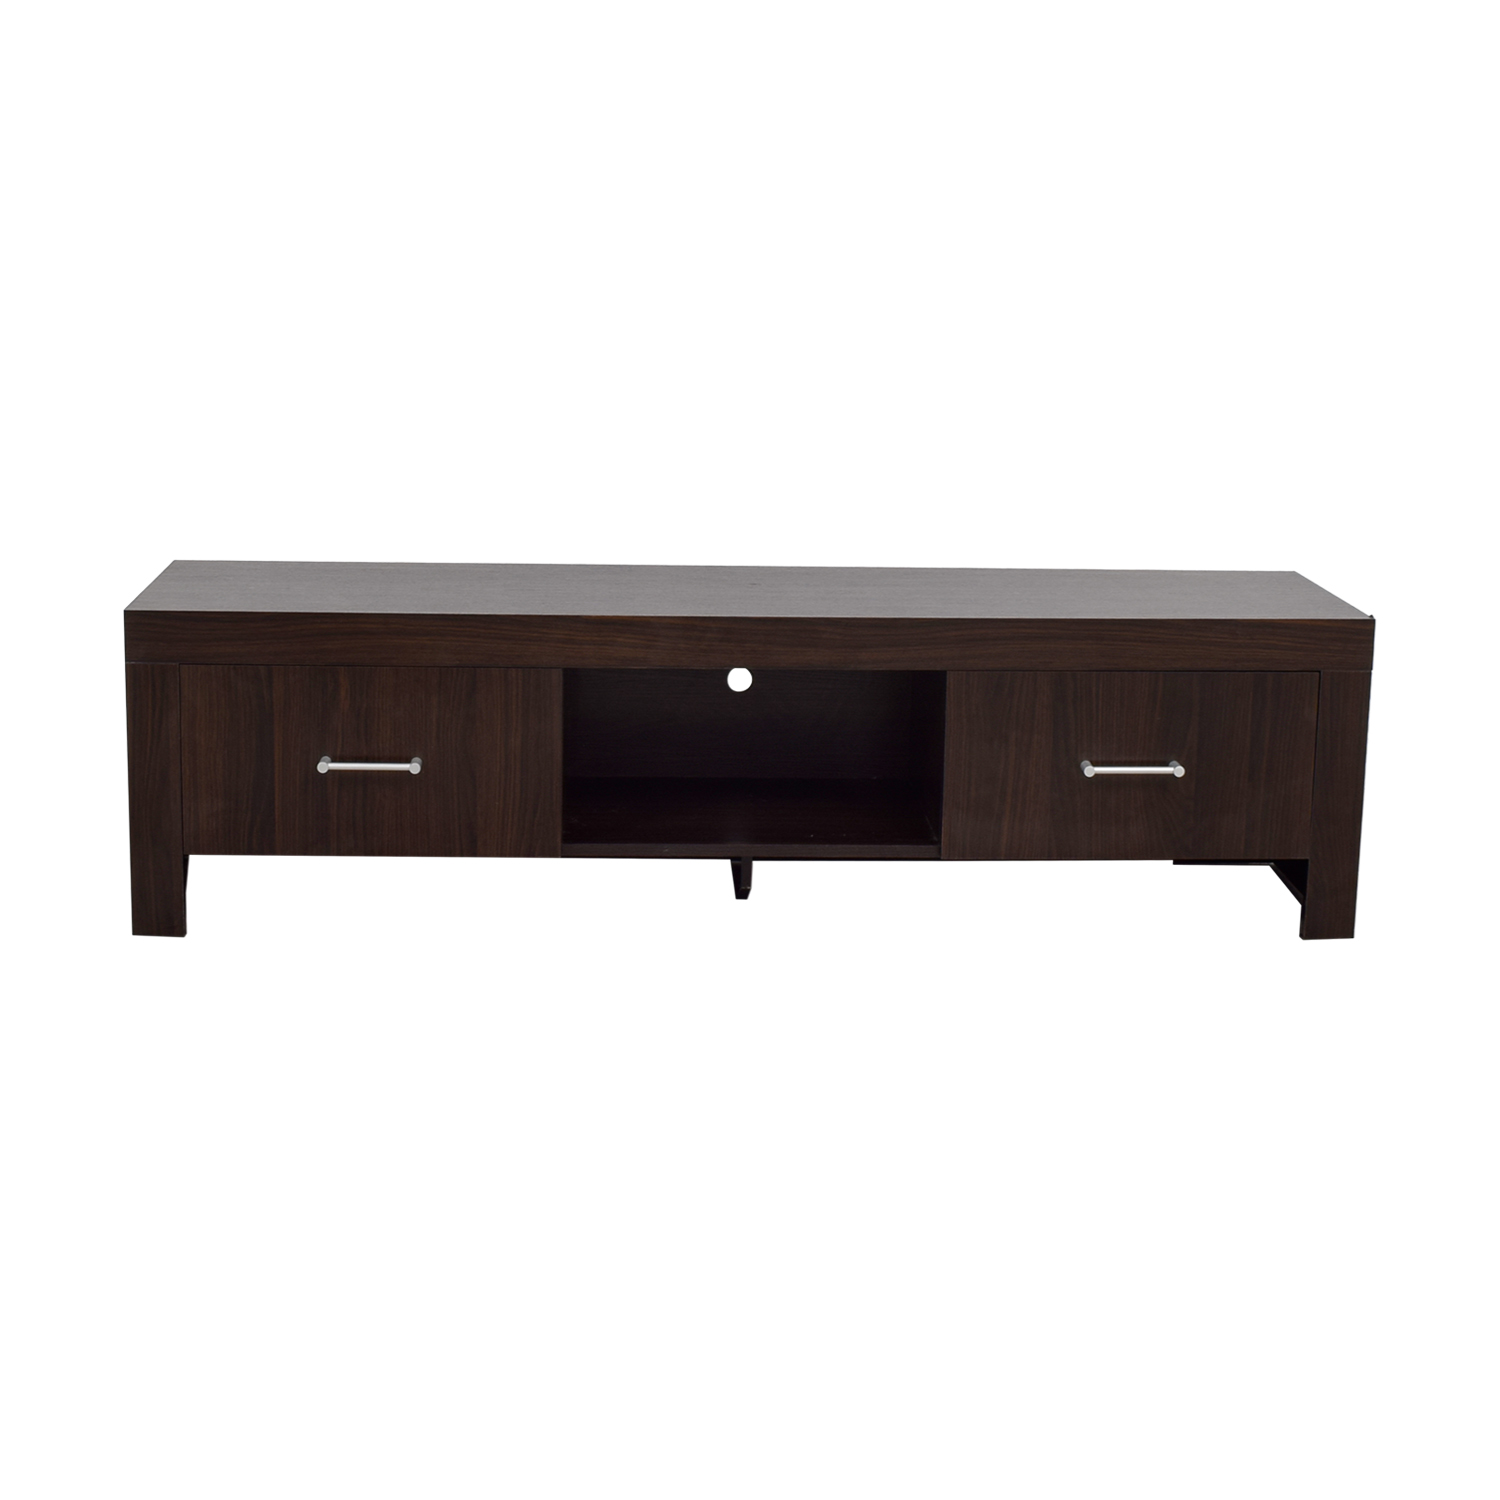 Rooms To Go Rooms To Go Two-Drawer TV Console nj